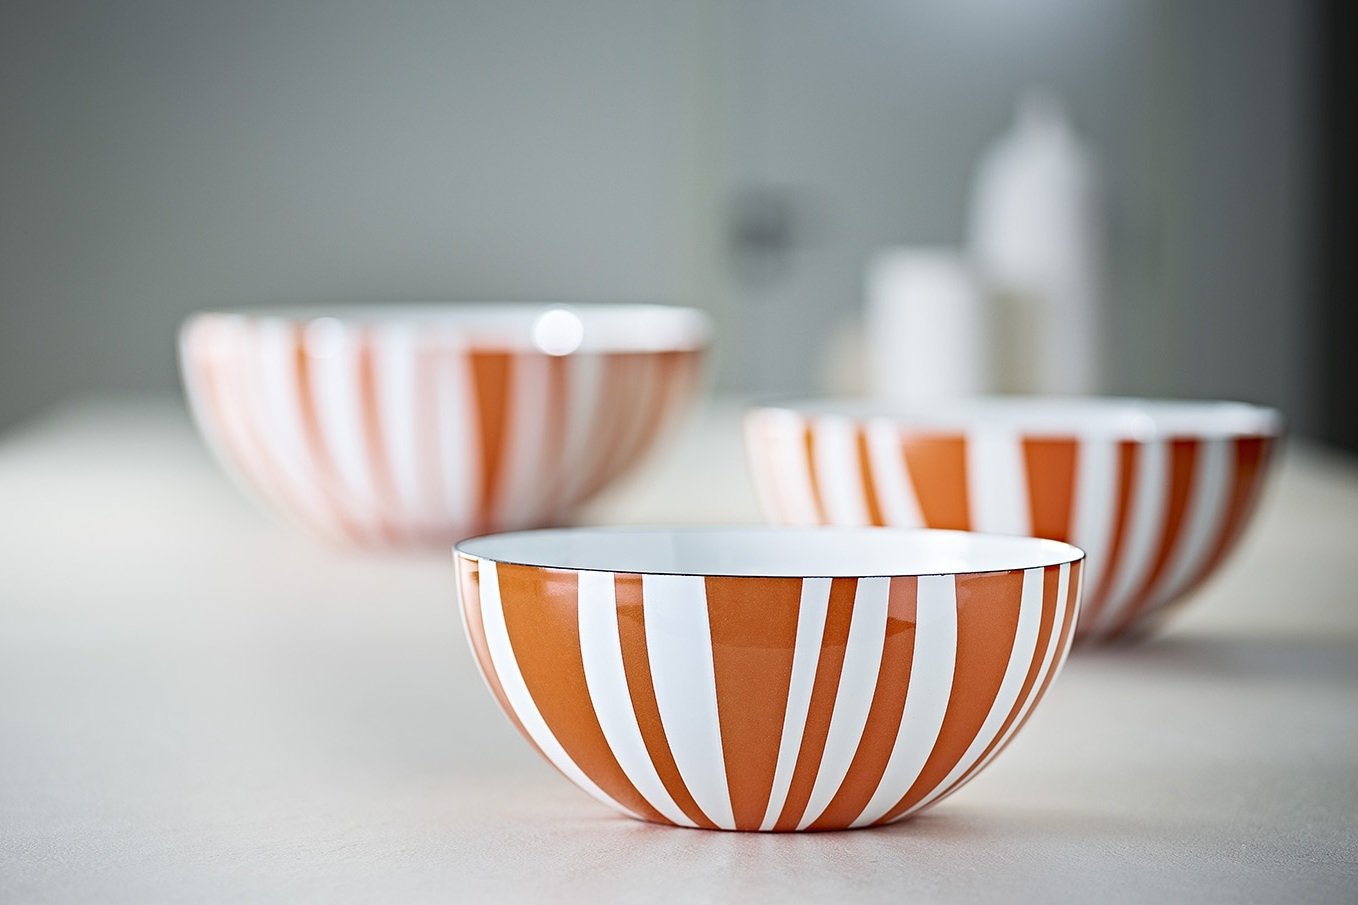 CH_Stripes_orange_miljø_3 copy.jpg